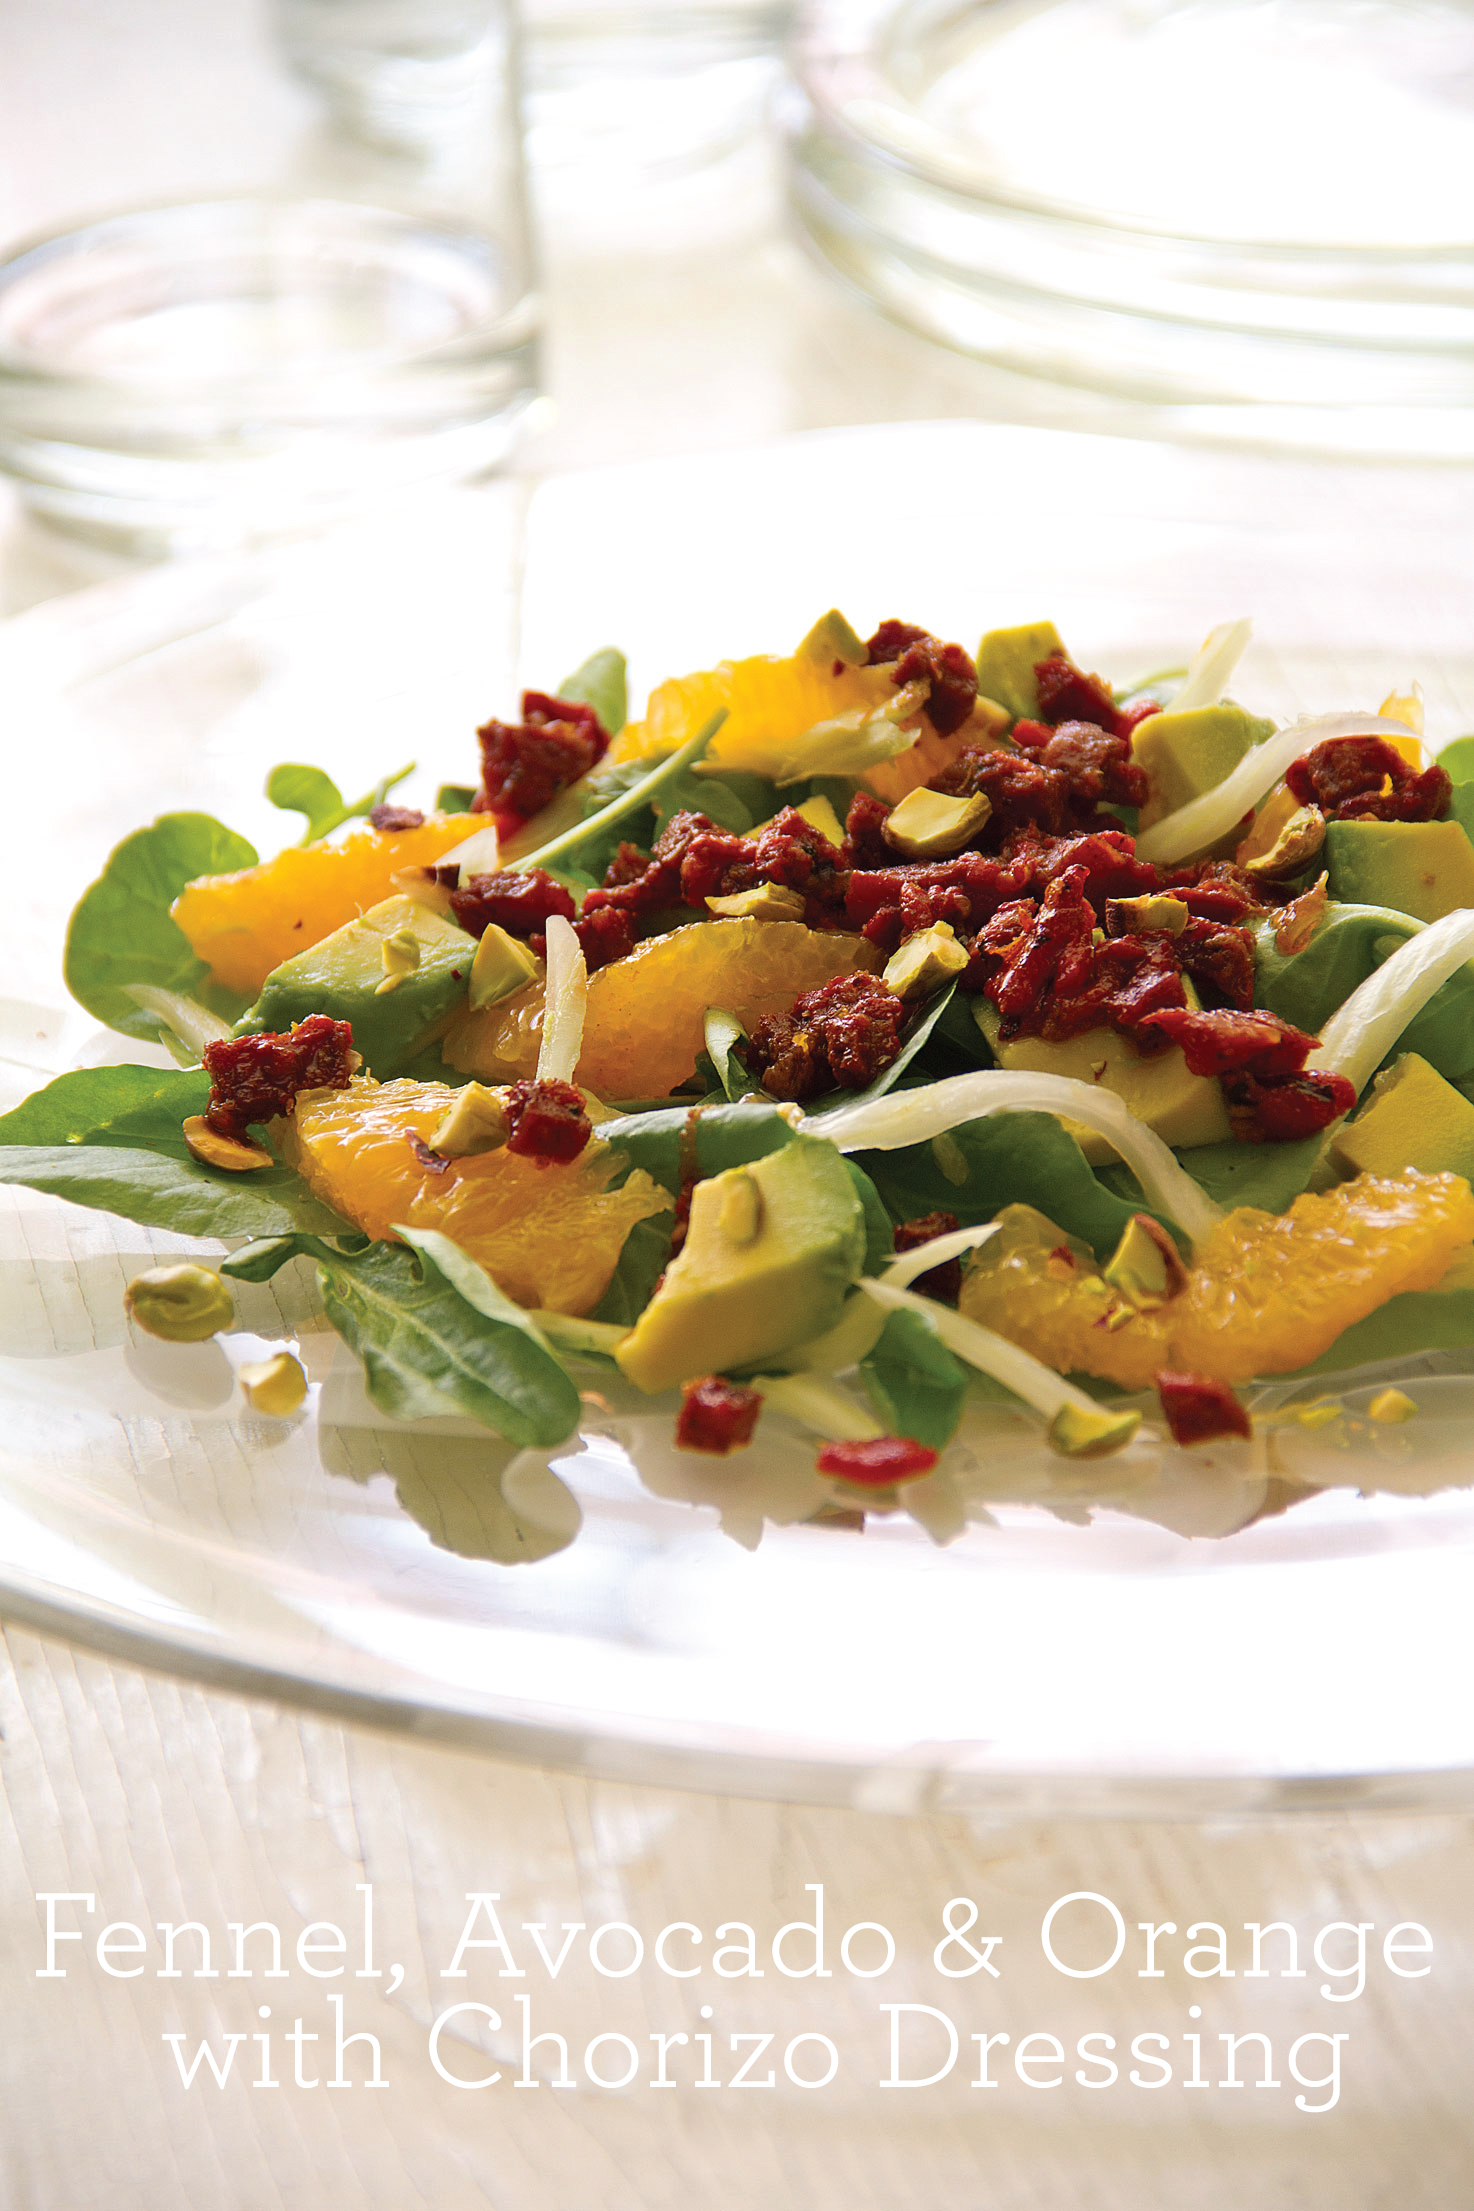 Fennel, Avocado and Orange with Chorizo Dressing